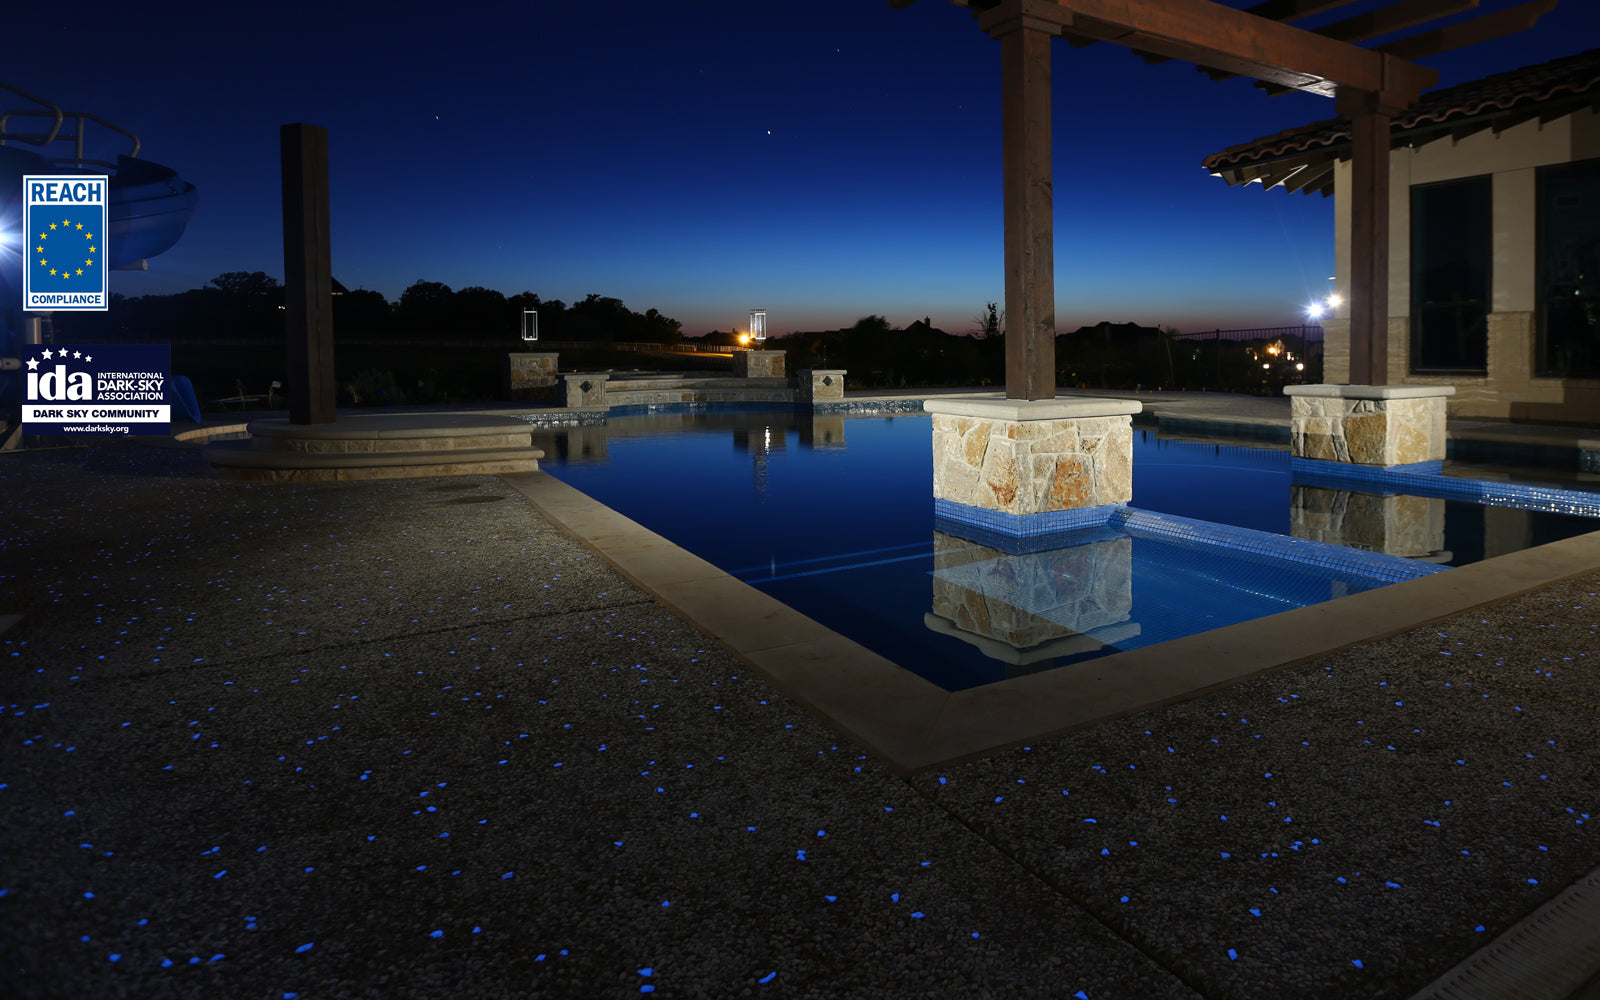 Ambient Glow Technology: Commercial Grade Glow in the Dark